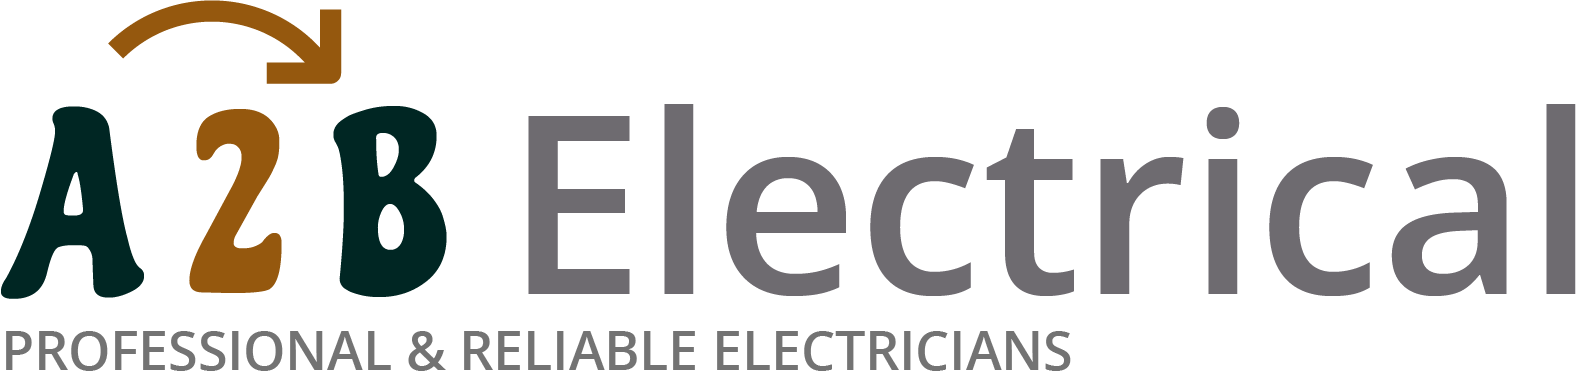 If you have electrical wiring problems in Earls Court, we can provide an electrician to have a look for you.